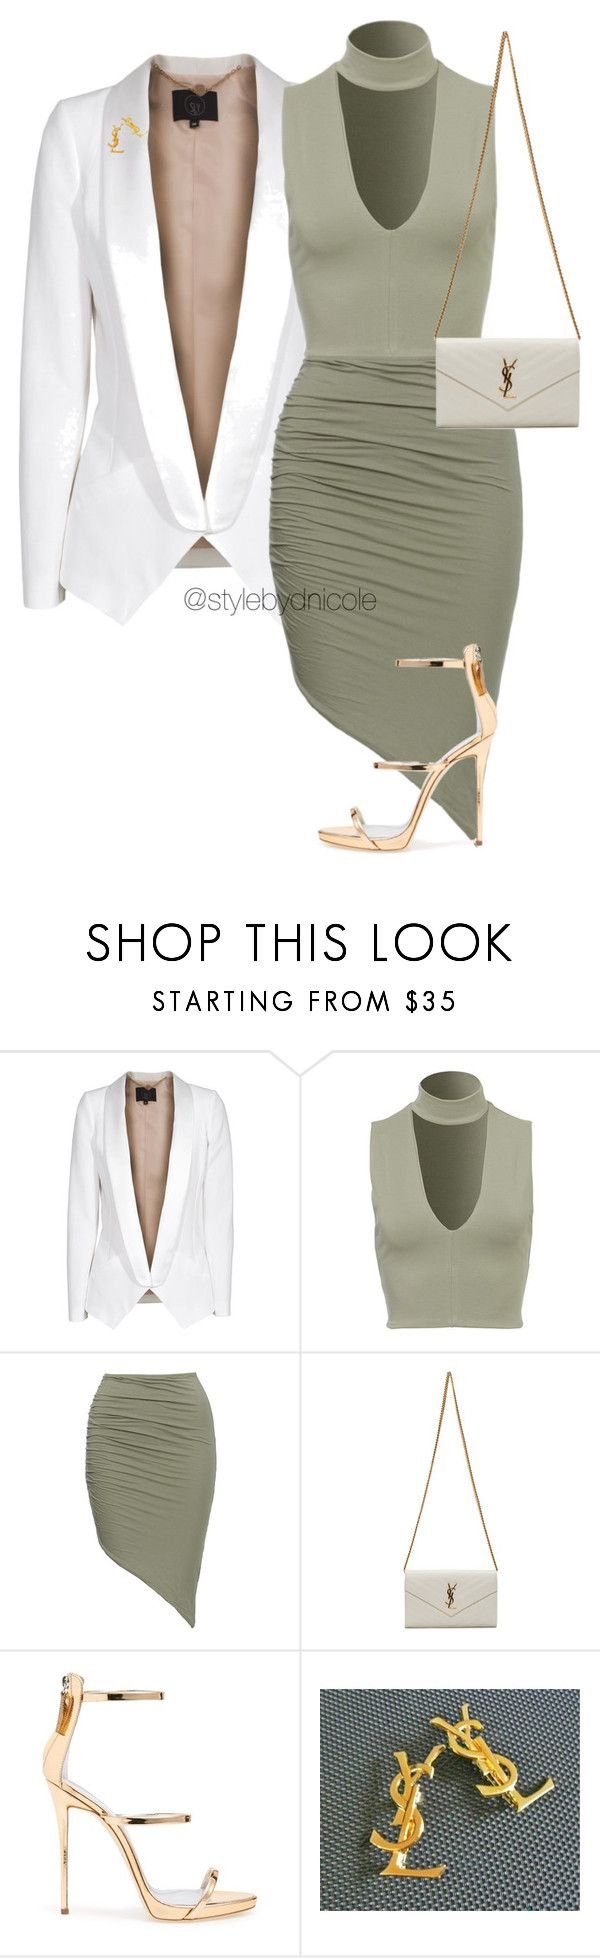 """""""Untitled #3256"""" by stylebydnicole ❤ liked on Polyvore featuring SLY 010, Yves Saint Laurent and Giuseppe Zanotti"""